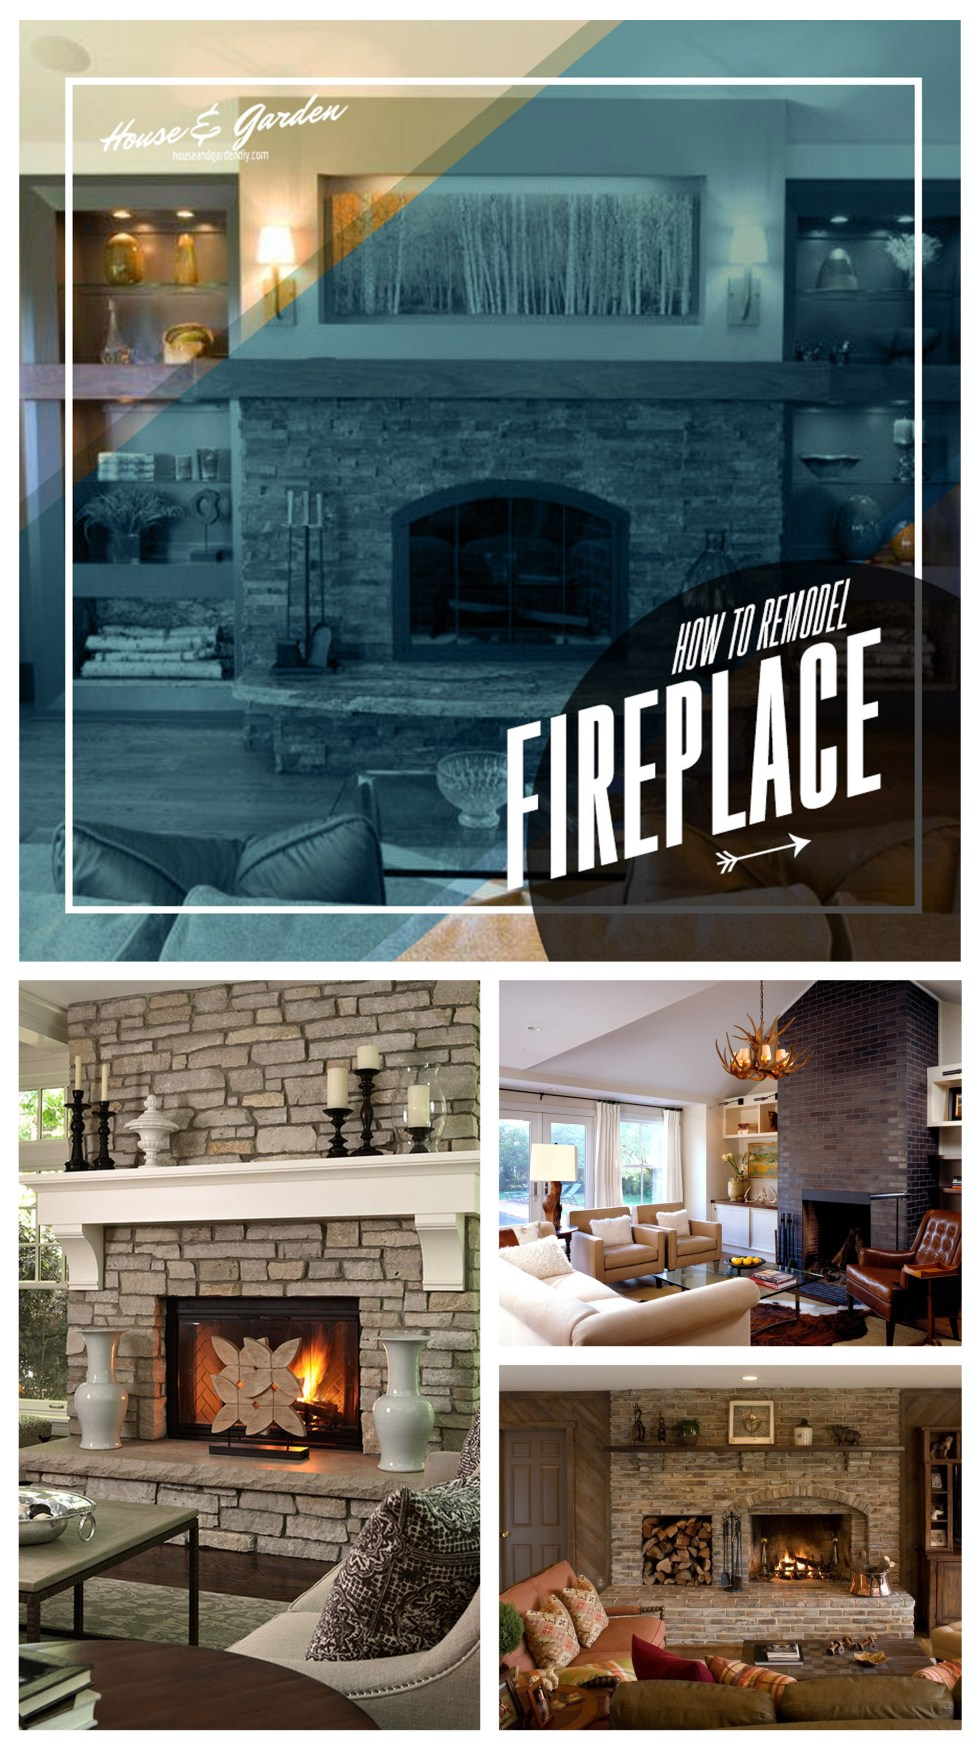 How to Remodel Your Fireplace - Tips to Remodel